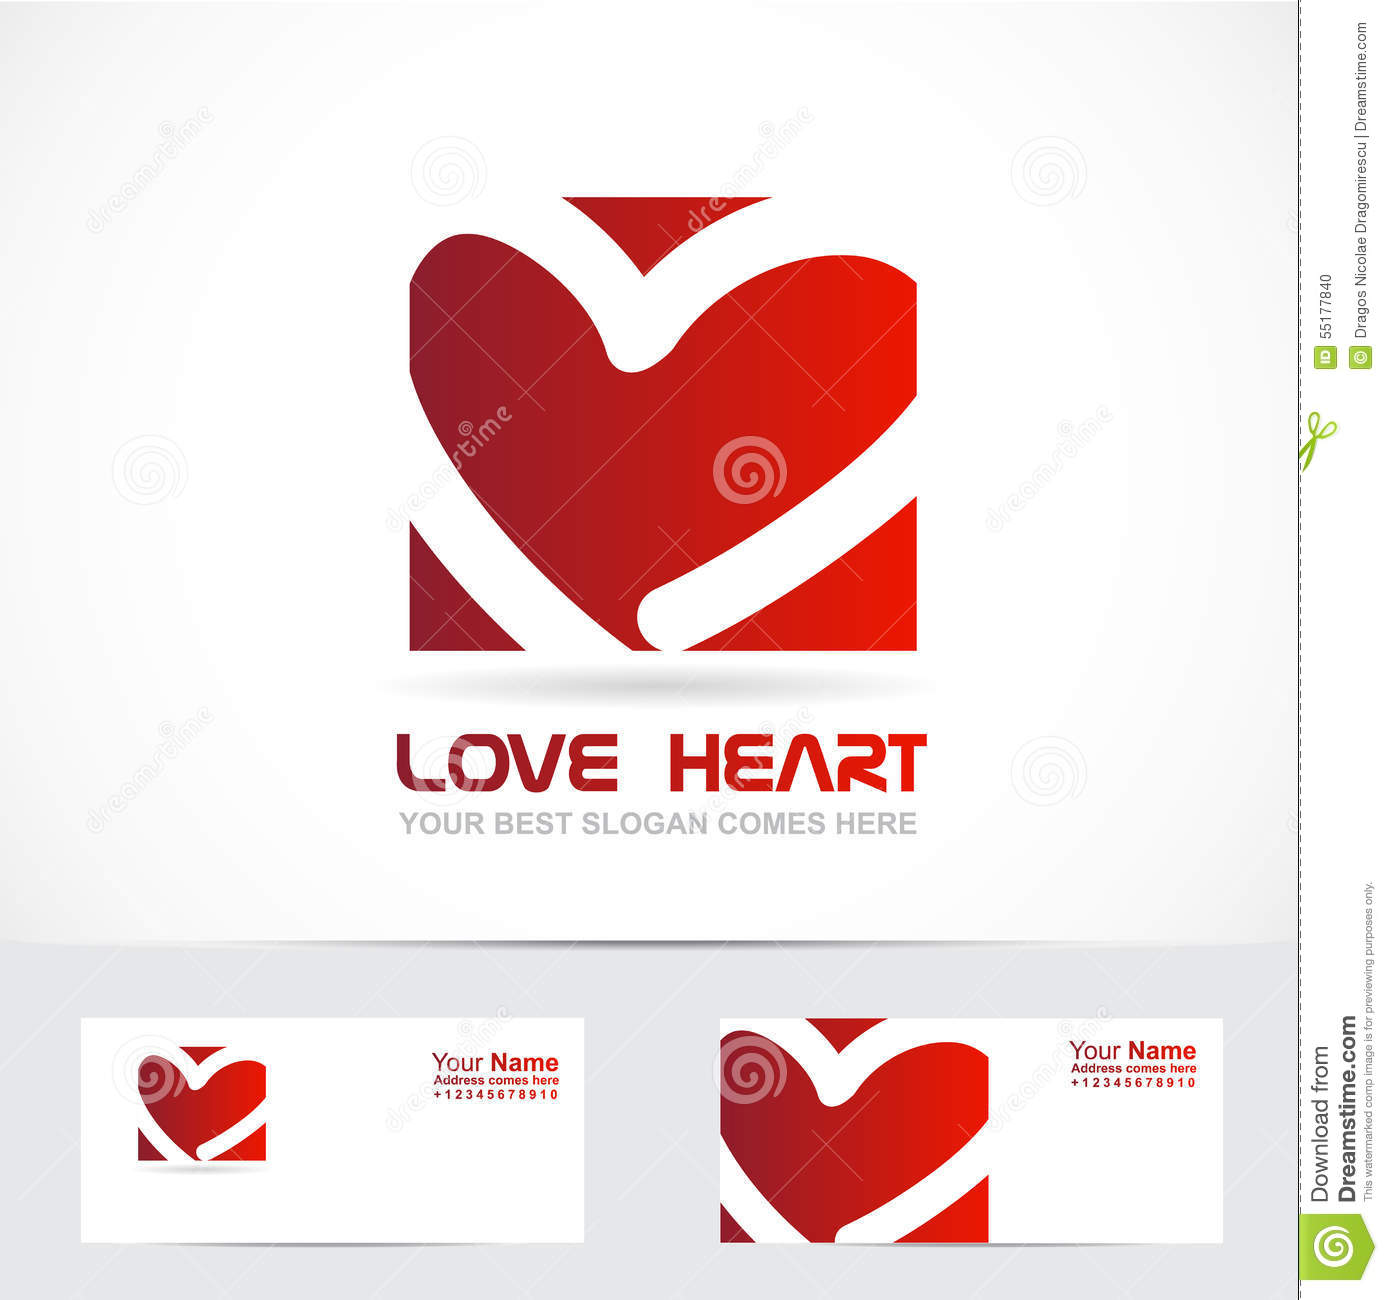 Love heart logo red stock vector. Image of graphic ...